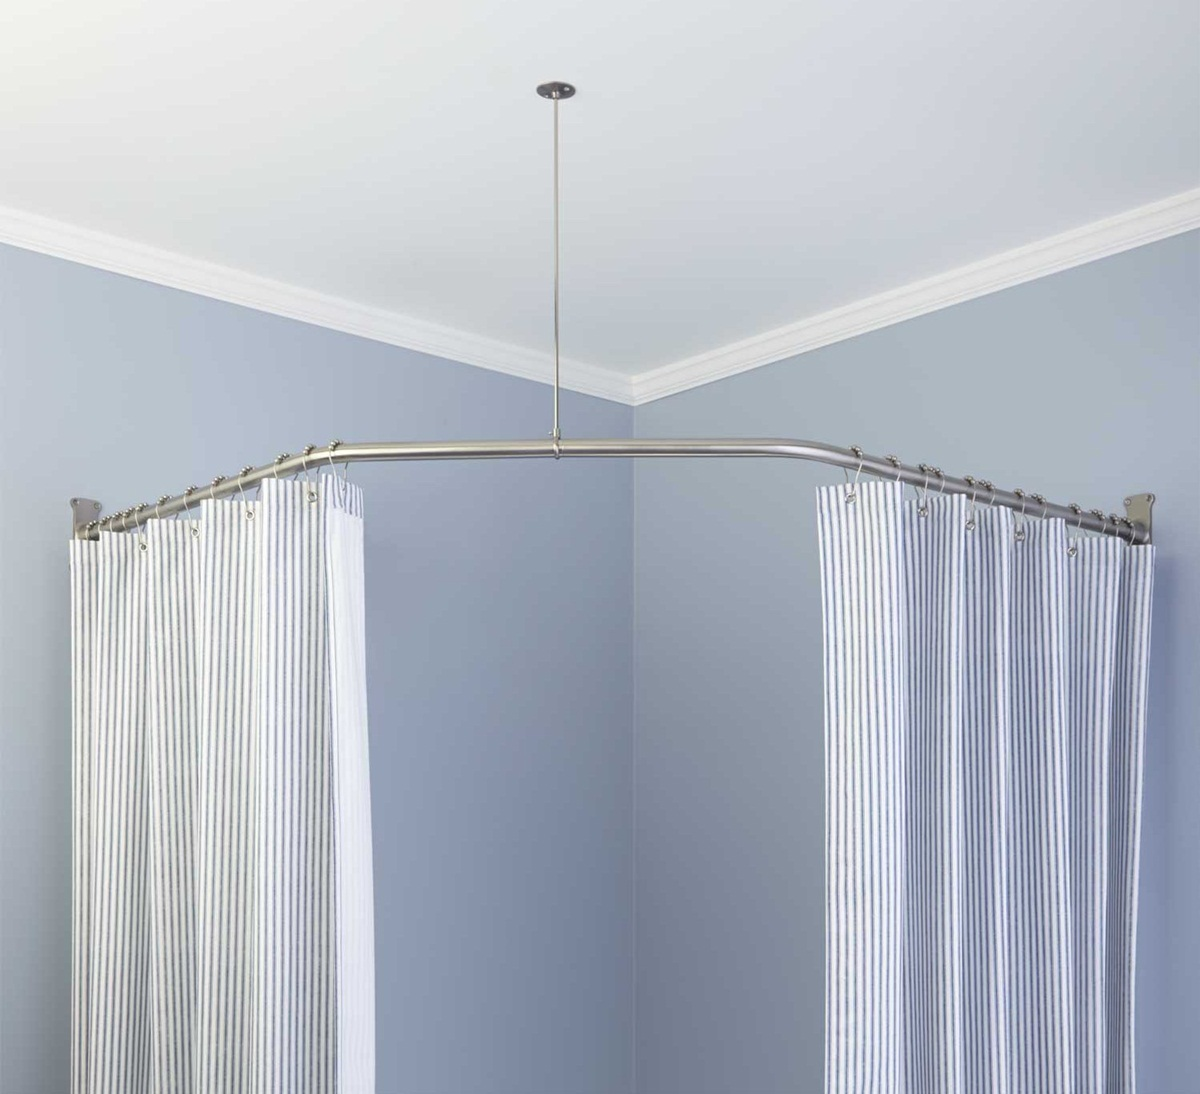 Where to Buy Curved Curtain Rods | Curved Curtain Rods | Curved Curtain Rods for Corner Windows